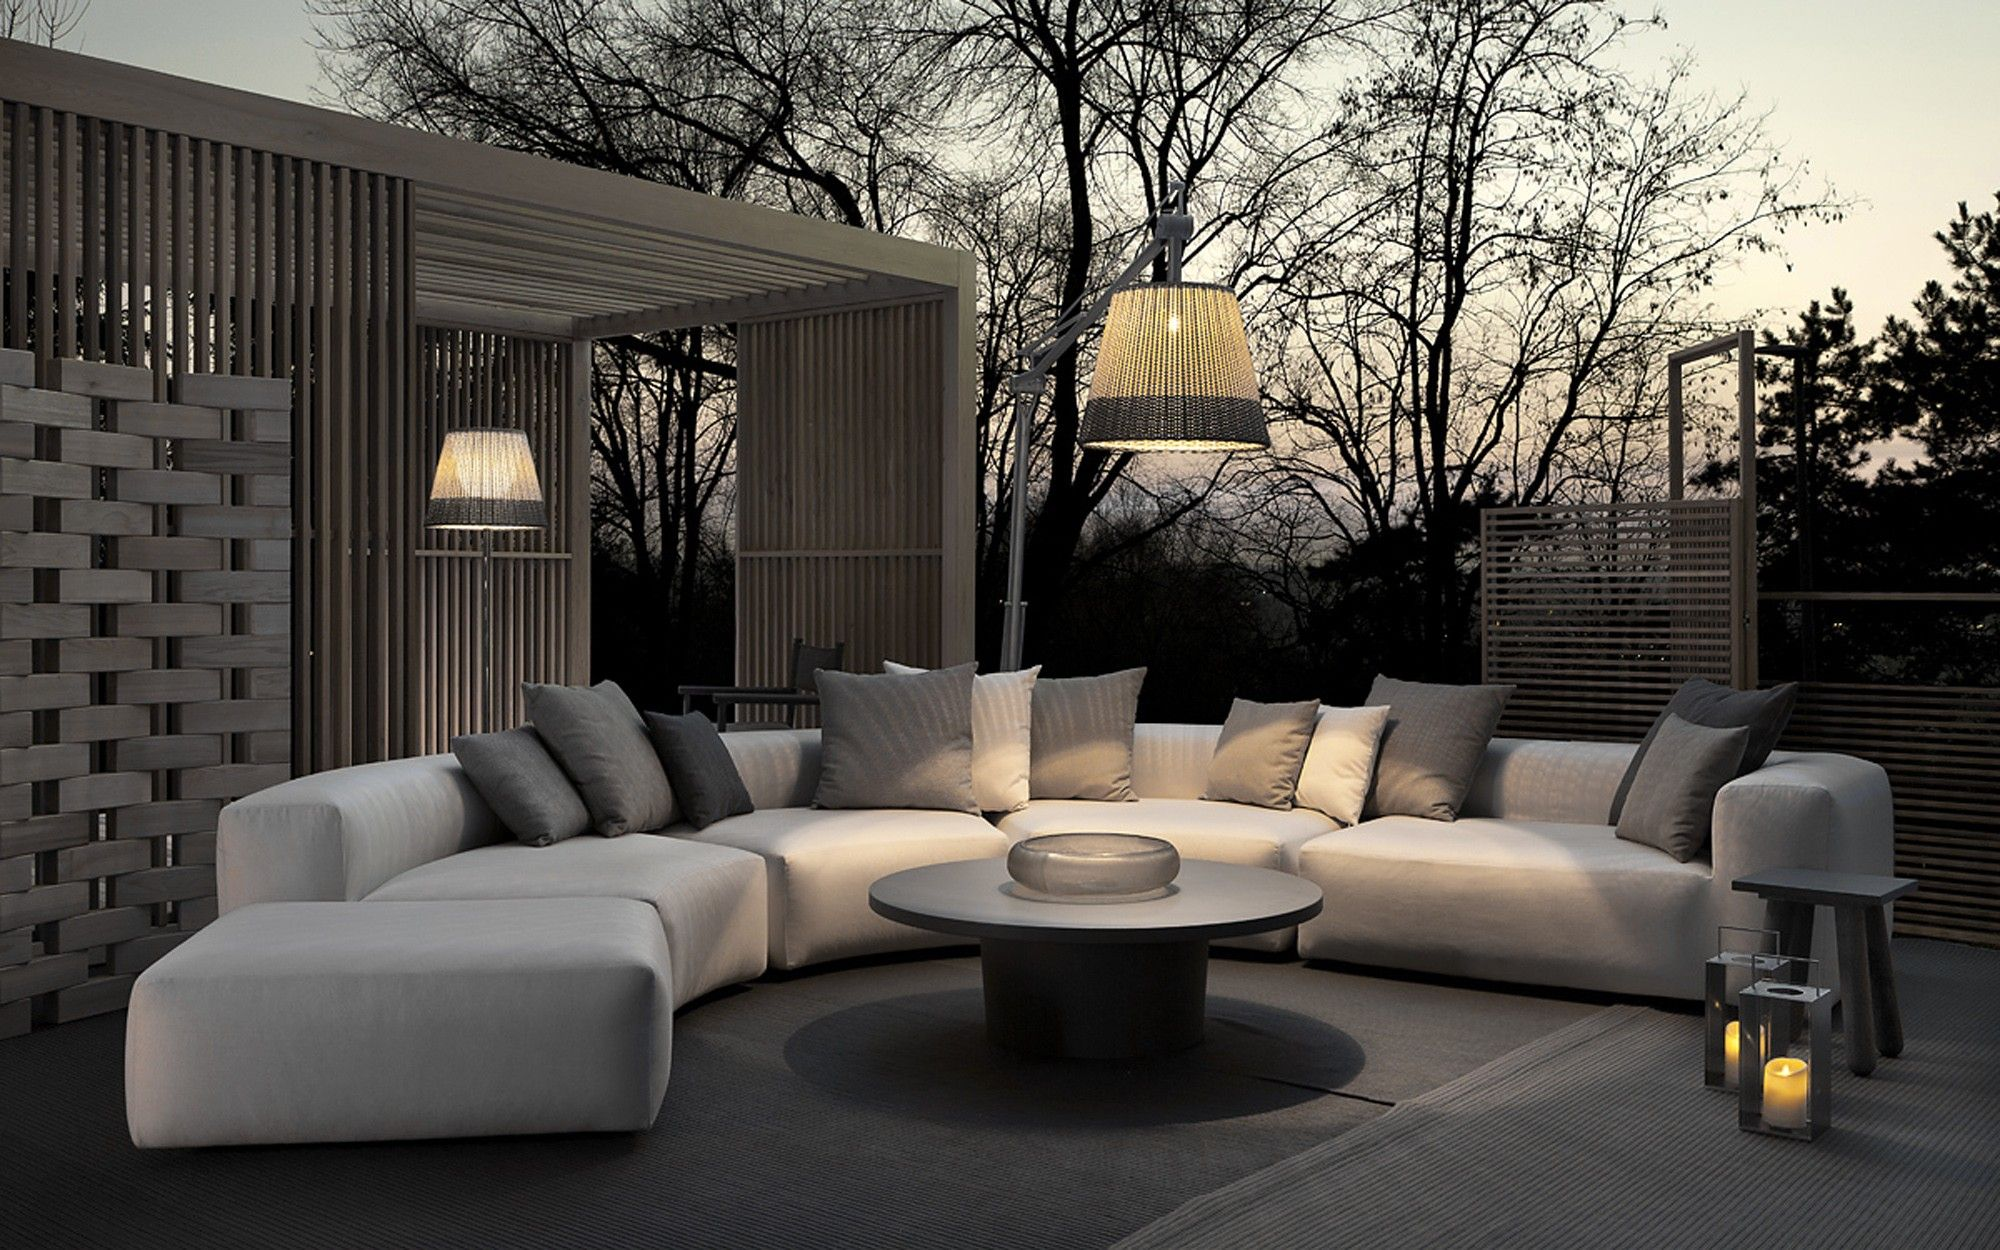 Montecarlo Outdoor Lounge By Exteta. Available From Pure Interiors.